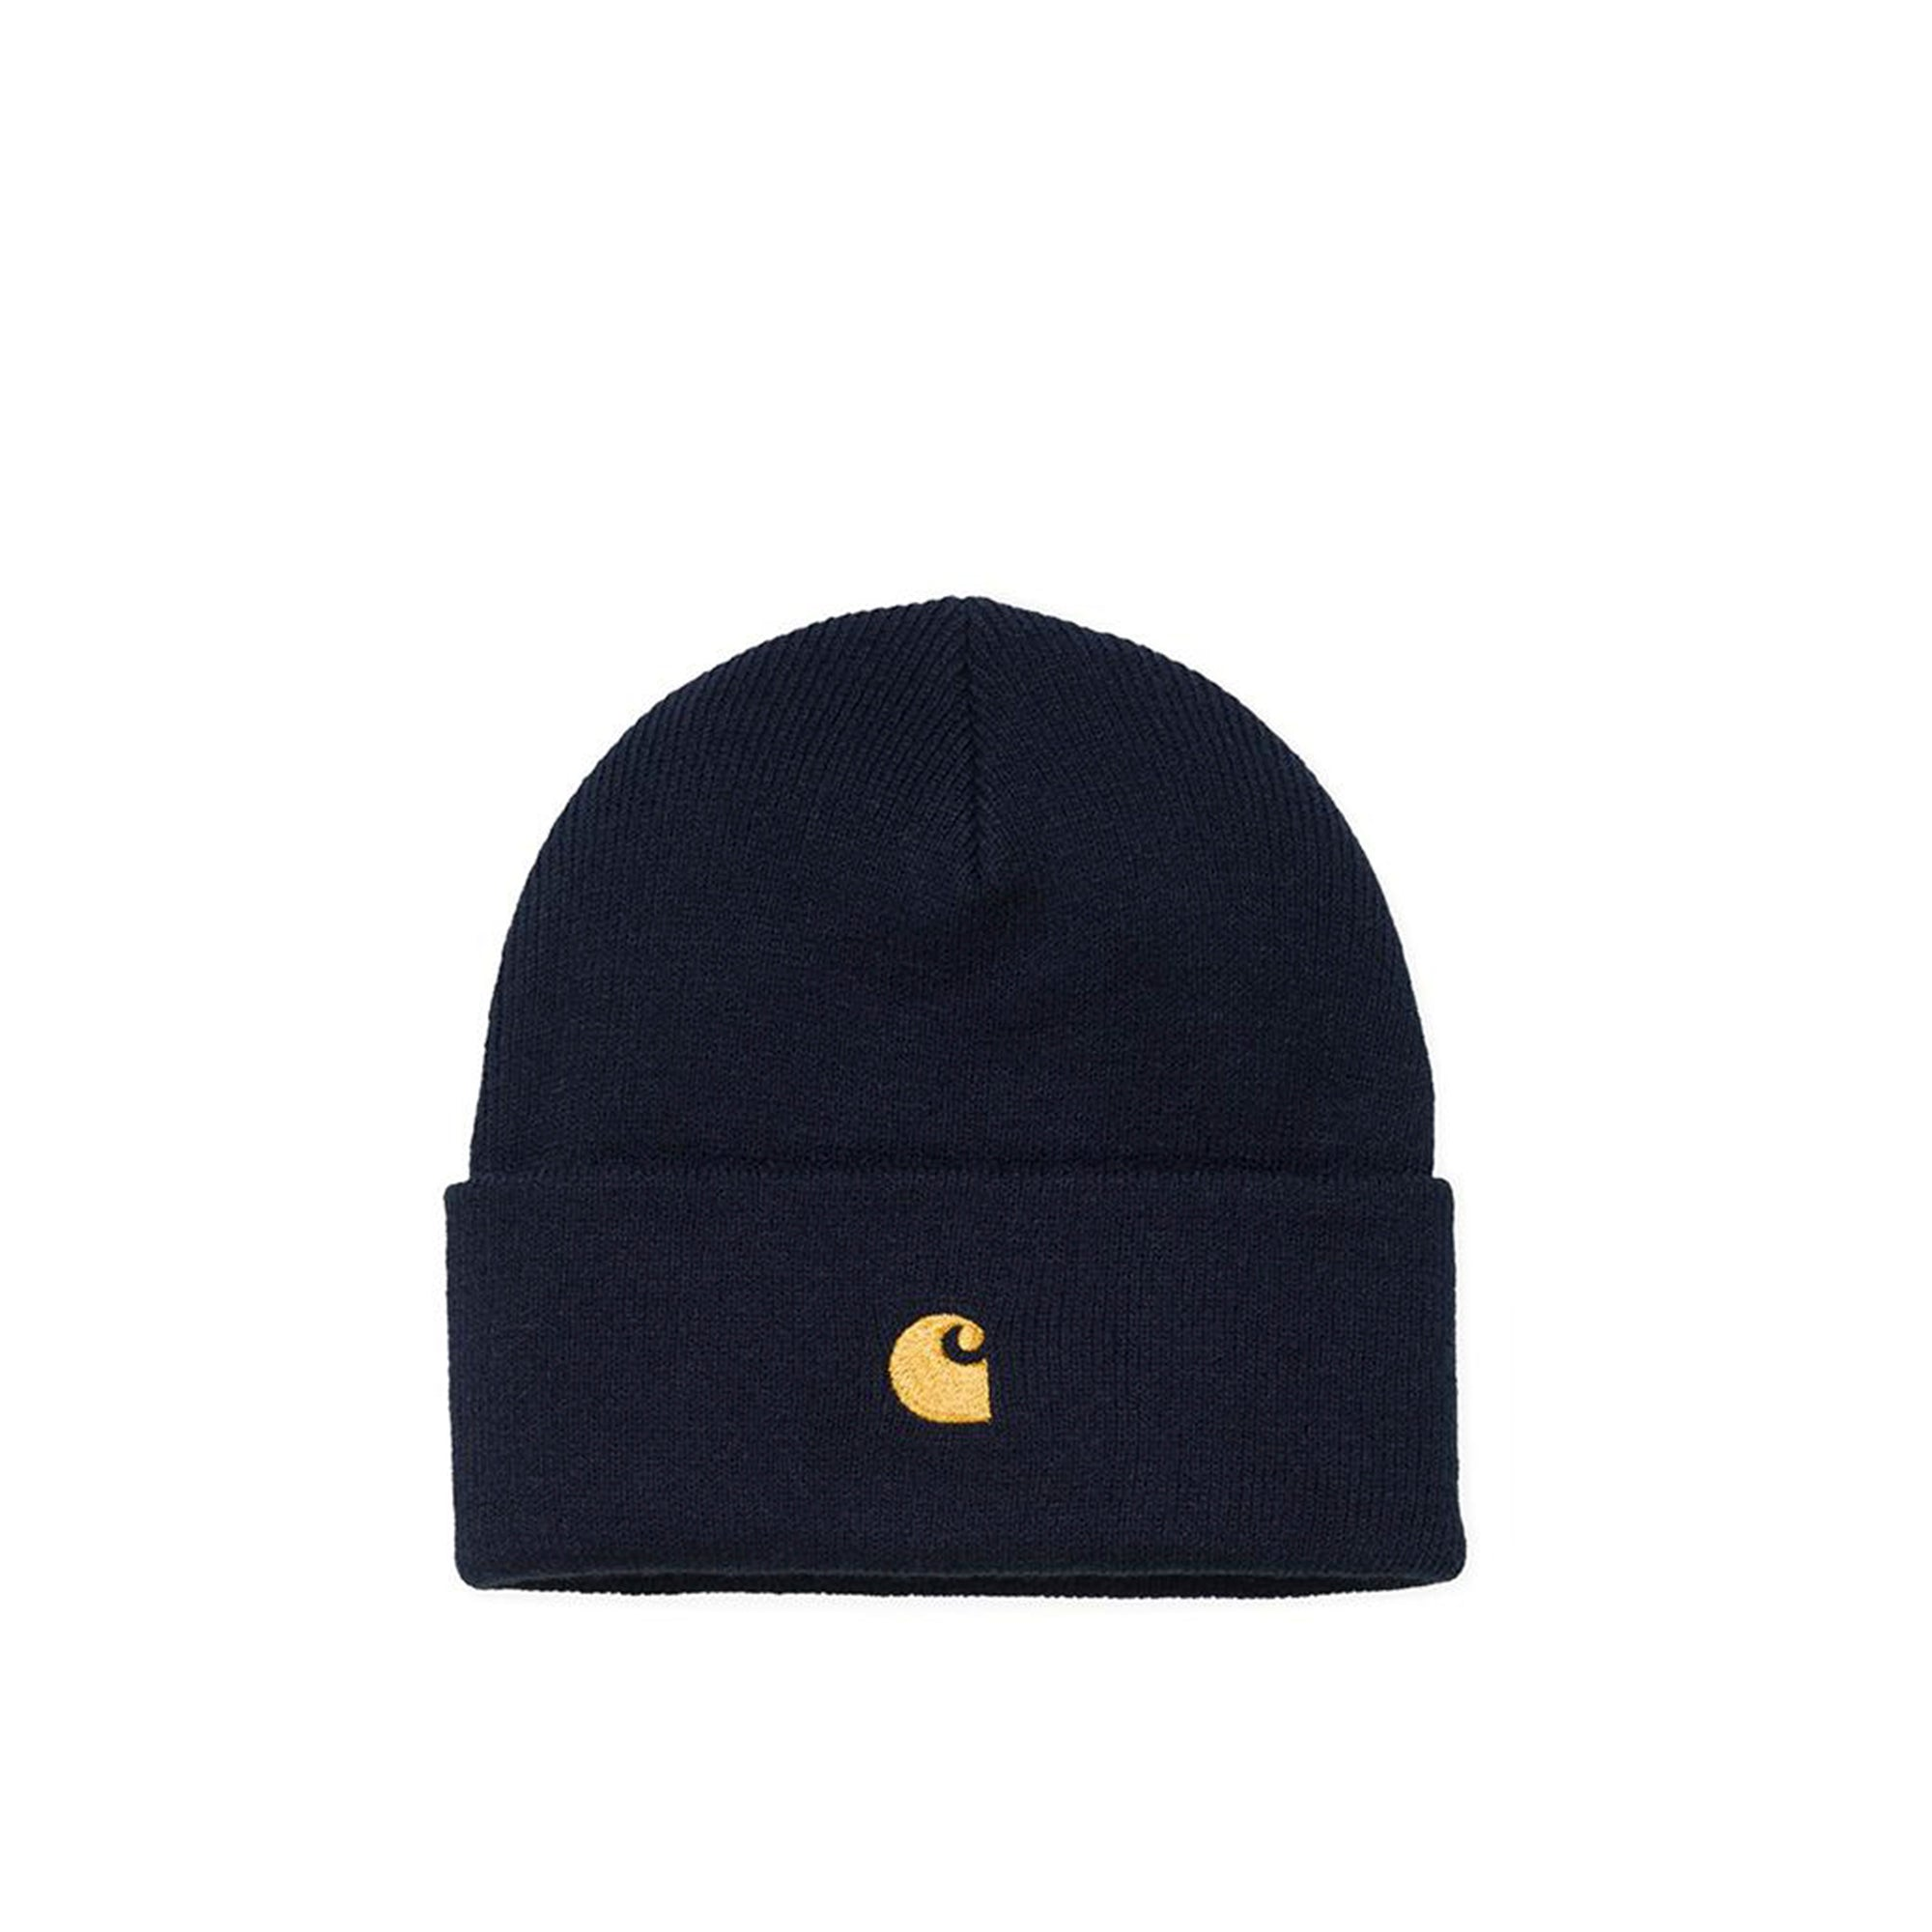 Carhartt WIP Chase Beanie: Dark Navy - The Union Project